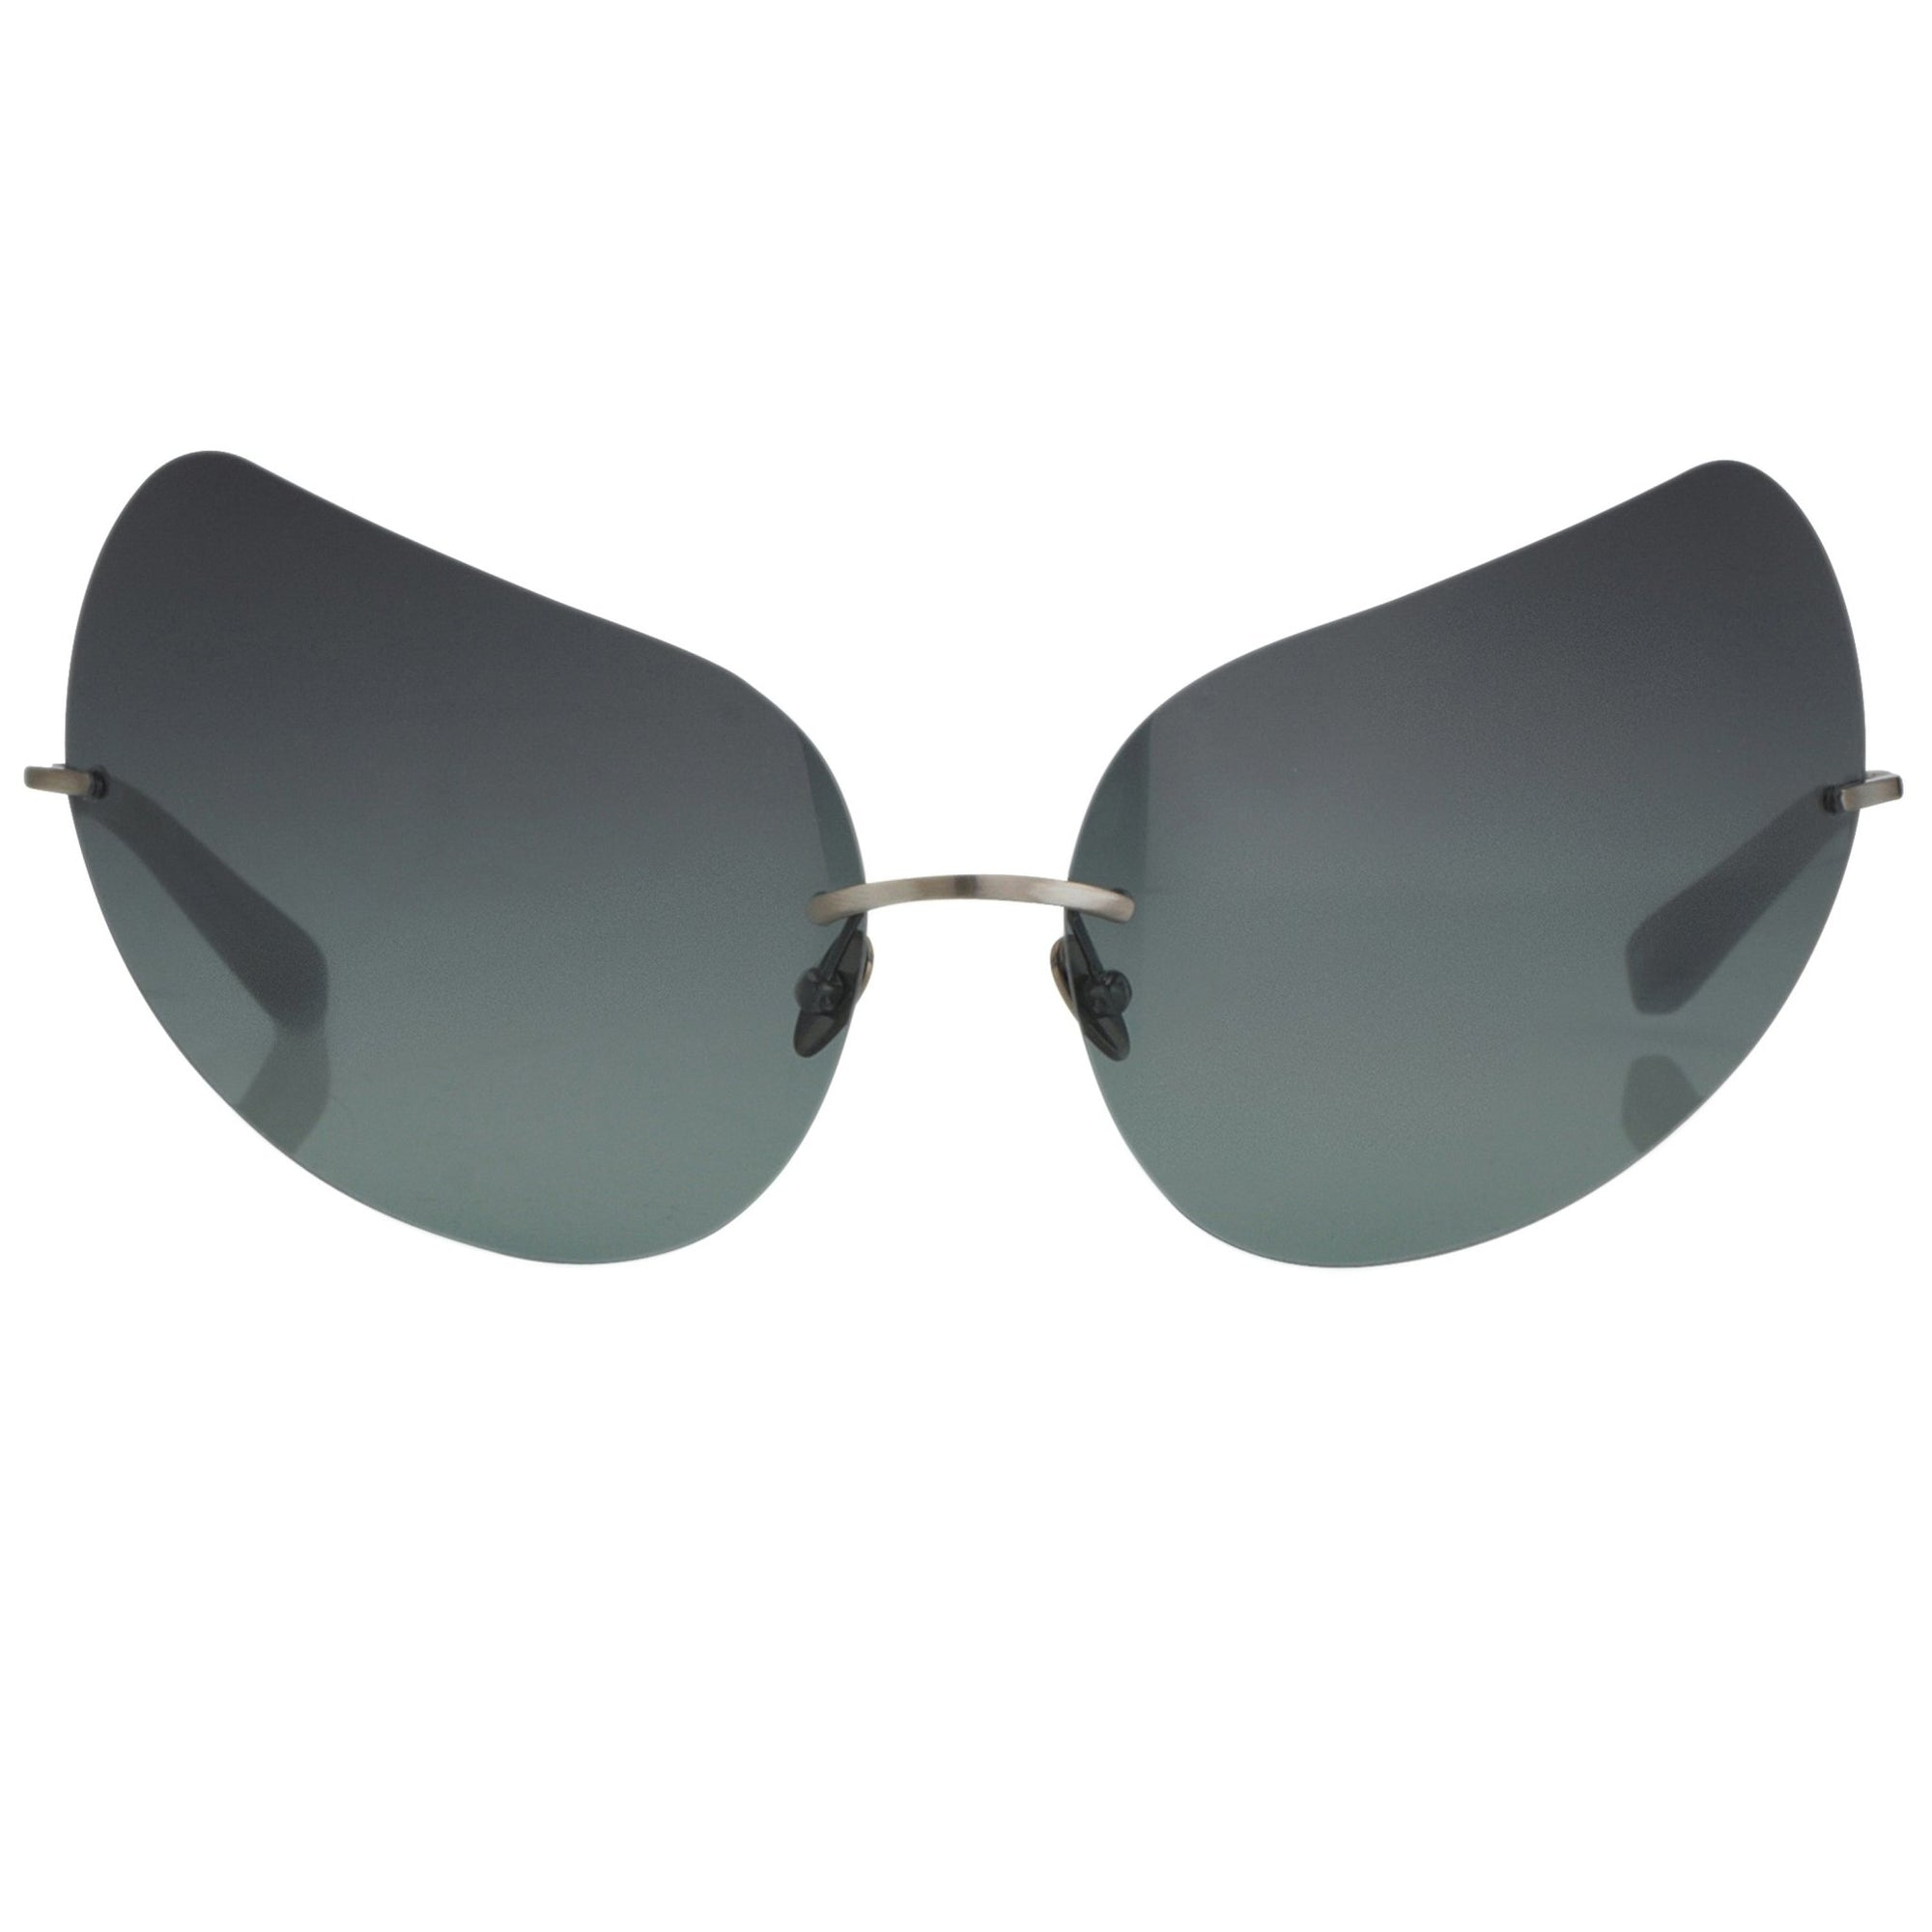 Todd Lynn Sunglasses Special Frame Brown and Dark Green Lenses Category 3 - TL5C2SUN - Watches & Crystals